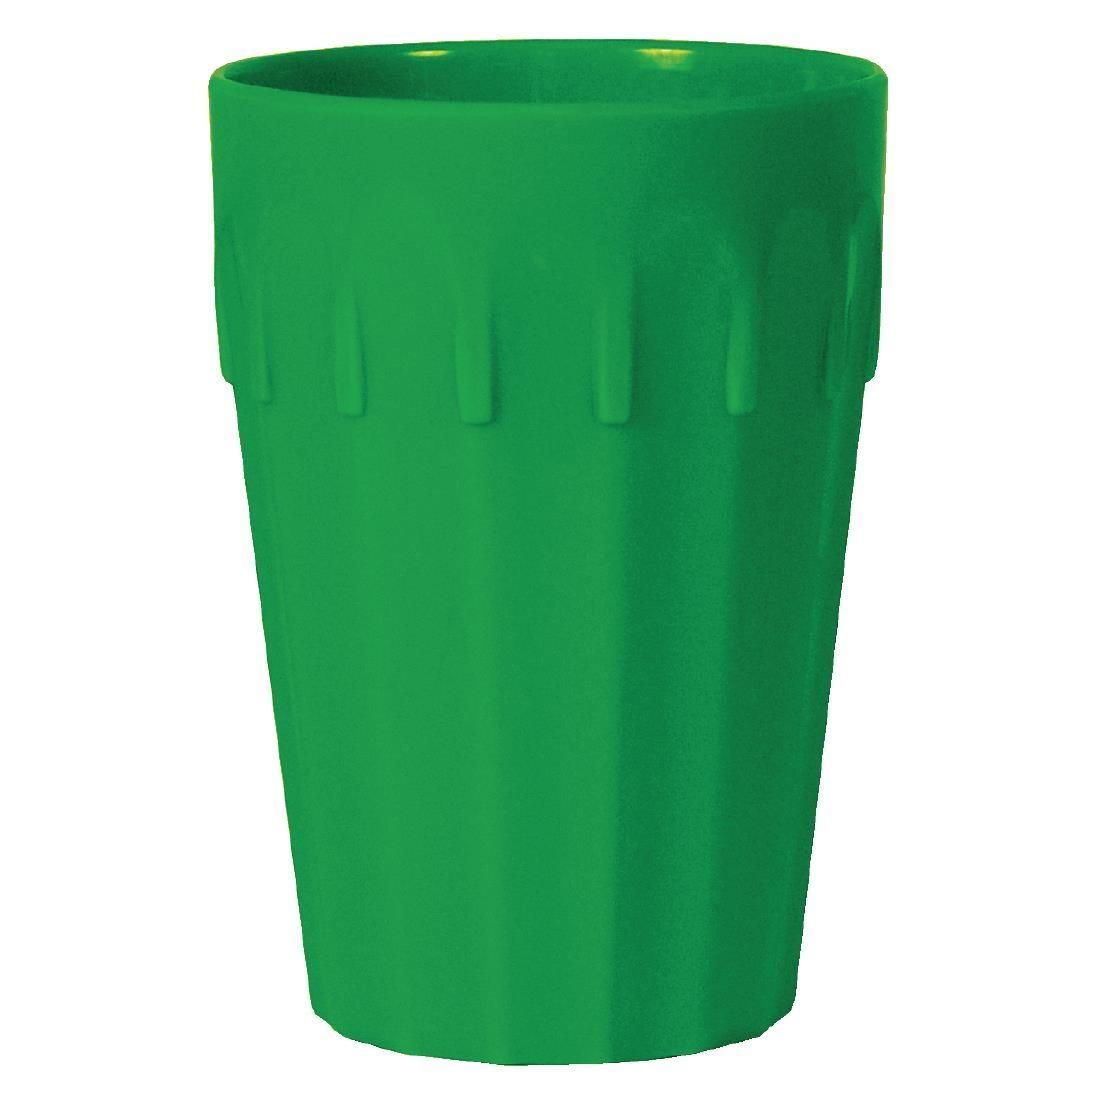 Kristallon Polycarbonate Tumblers Green 142ml - Case 12 - CE271